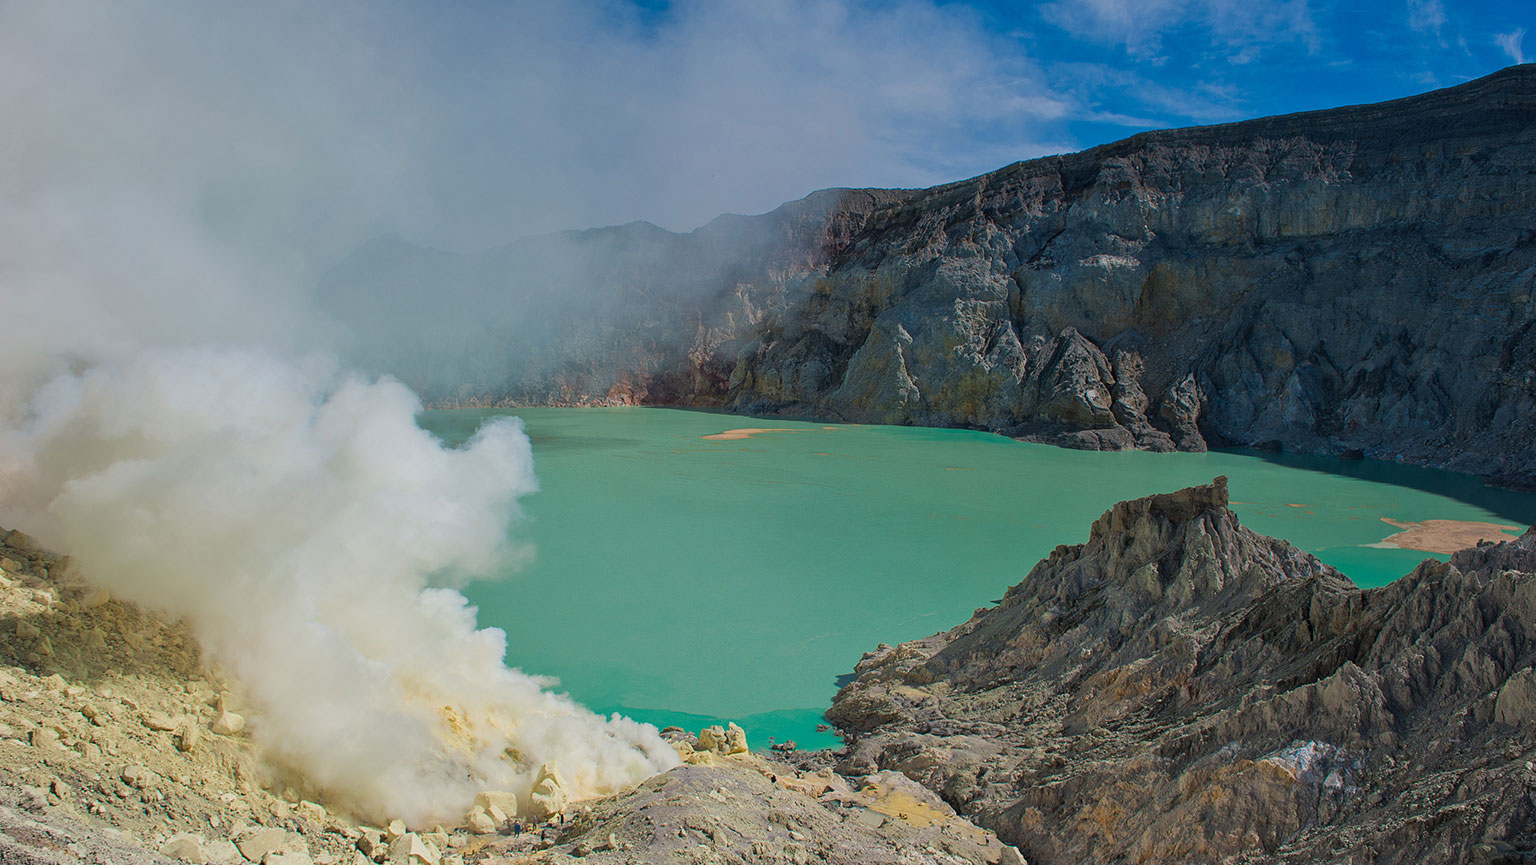 Kawah Ijen—World's Most Acid Lake